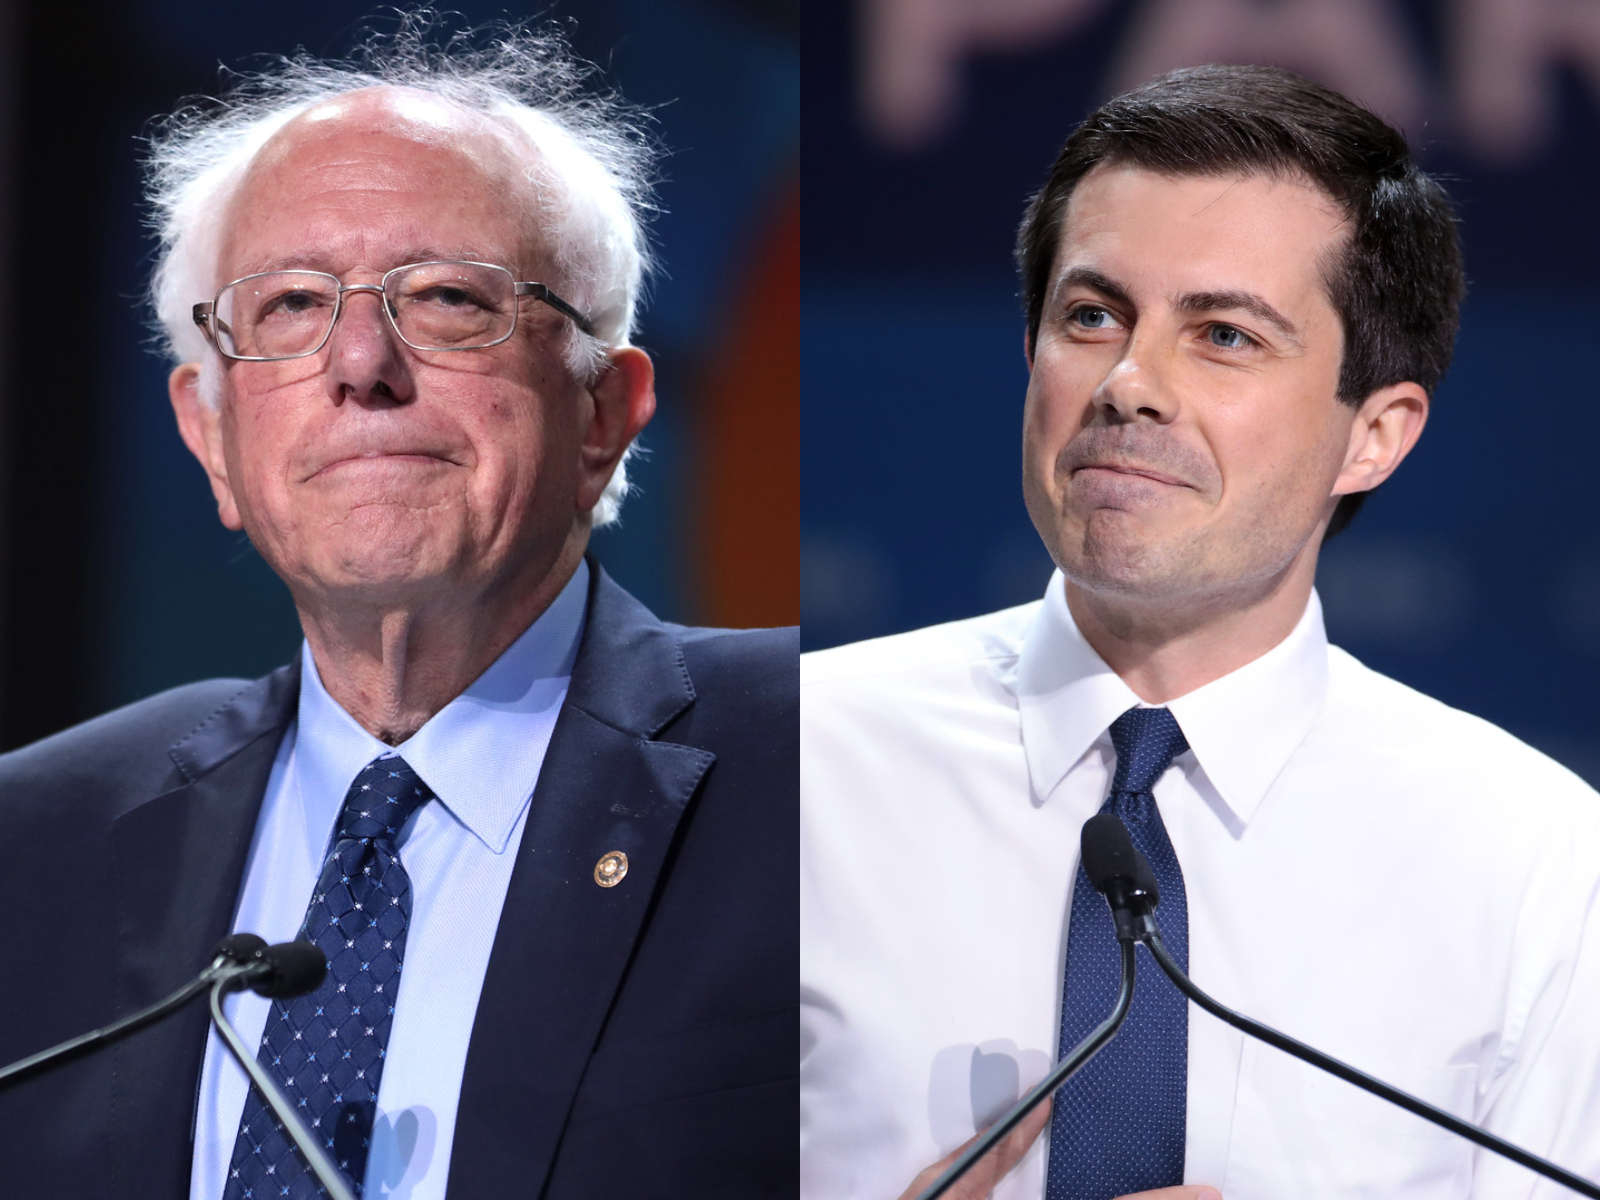 bernie sanders, pete buttigieg, new hampshire, primary